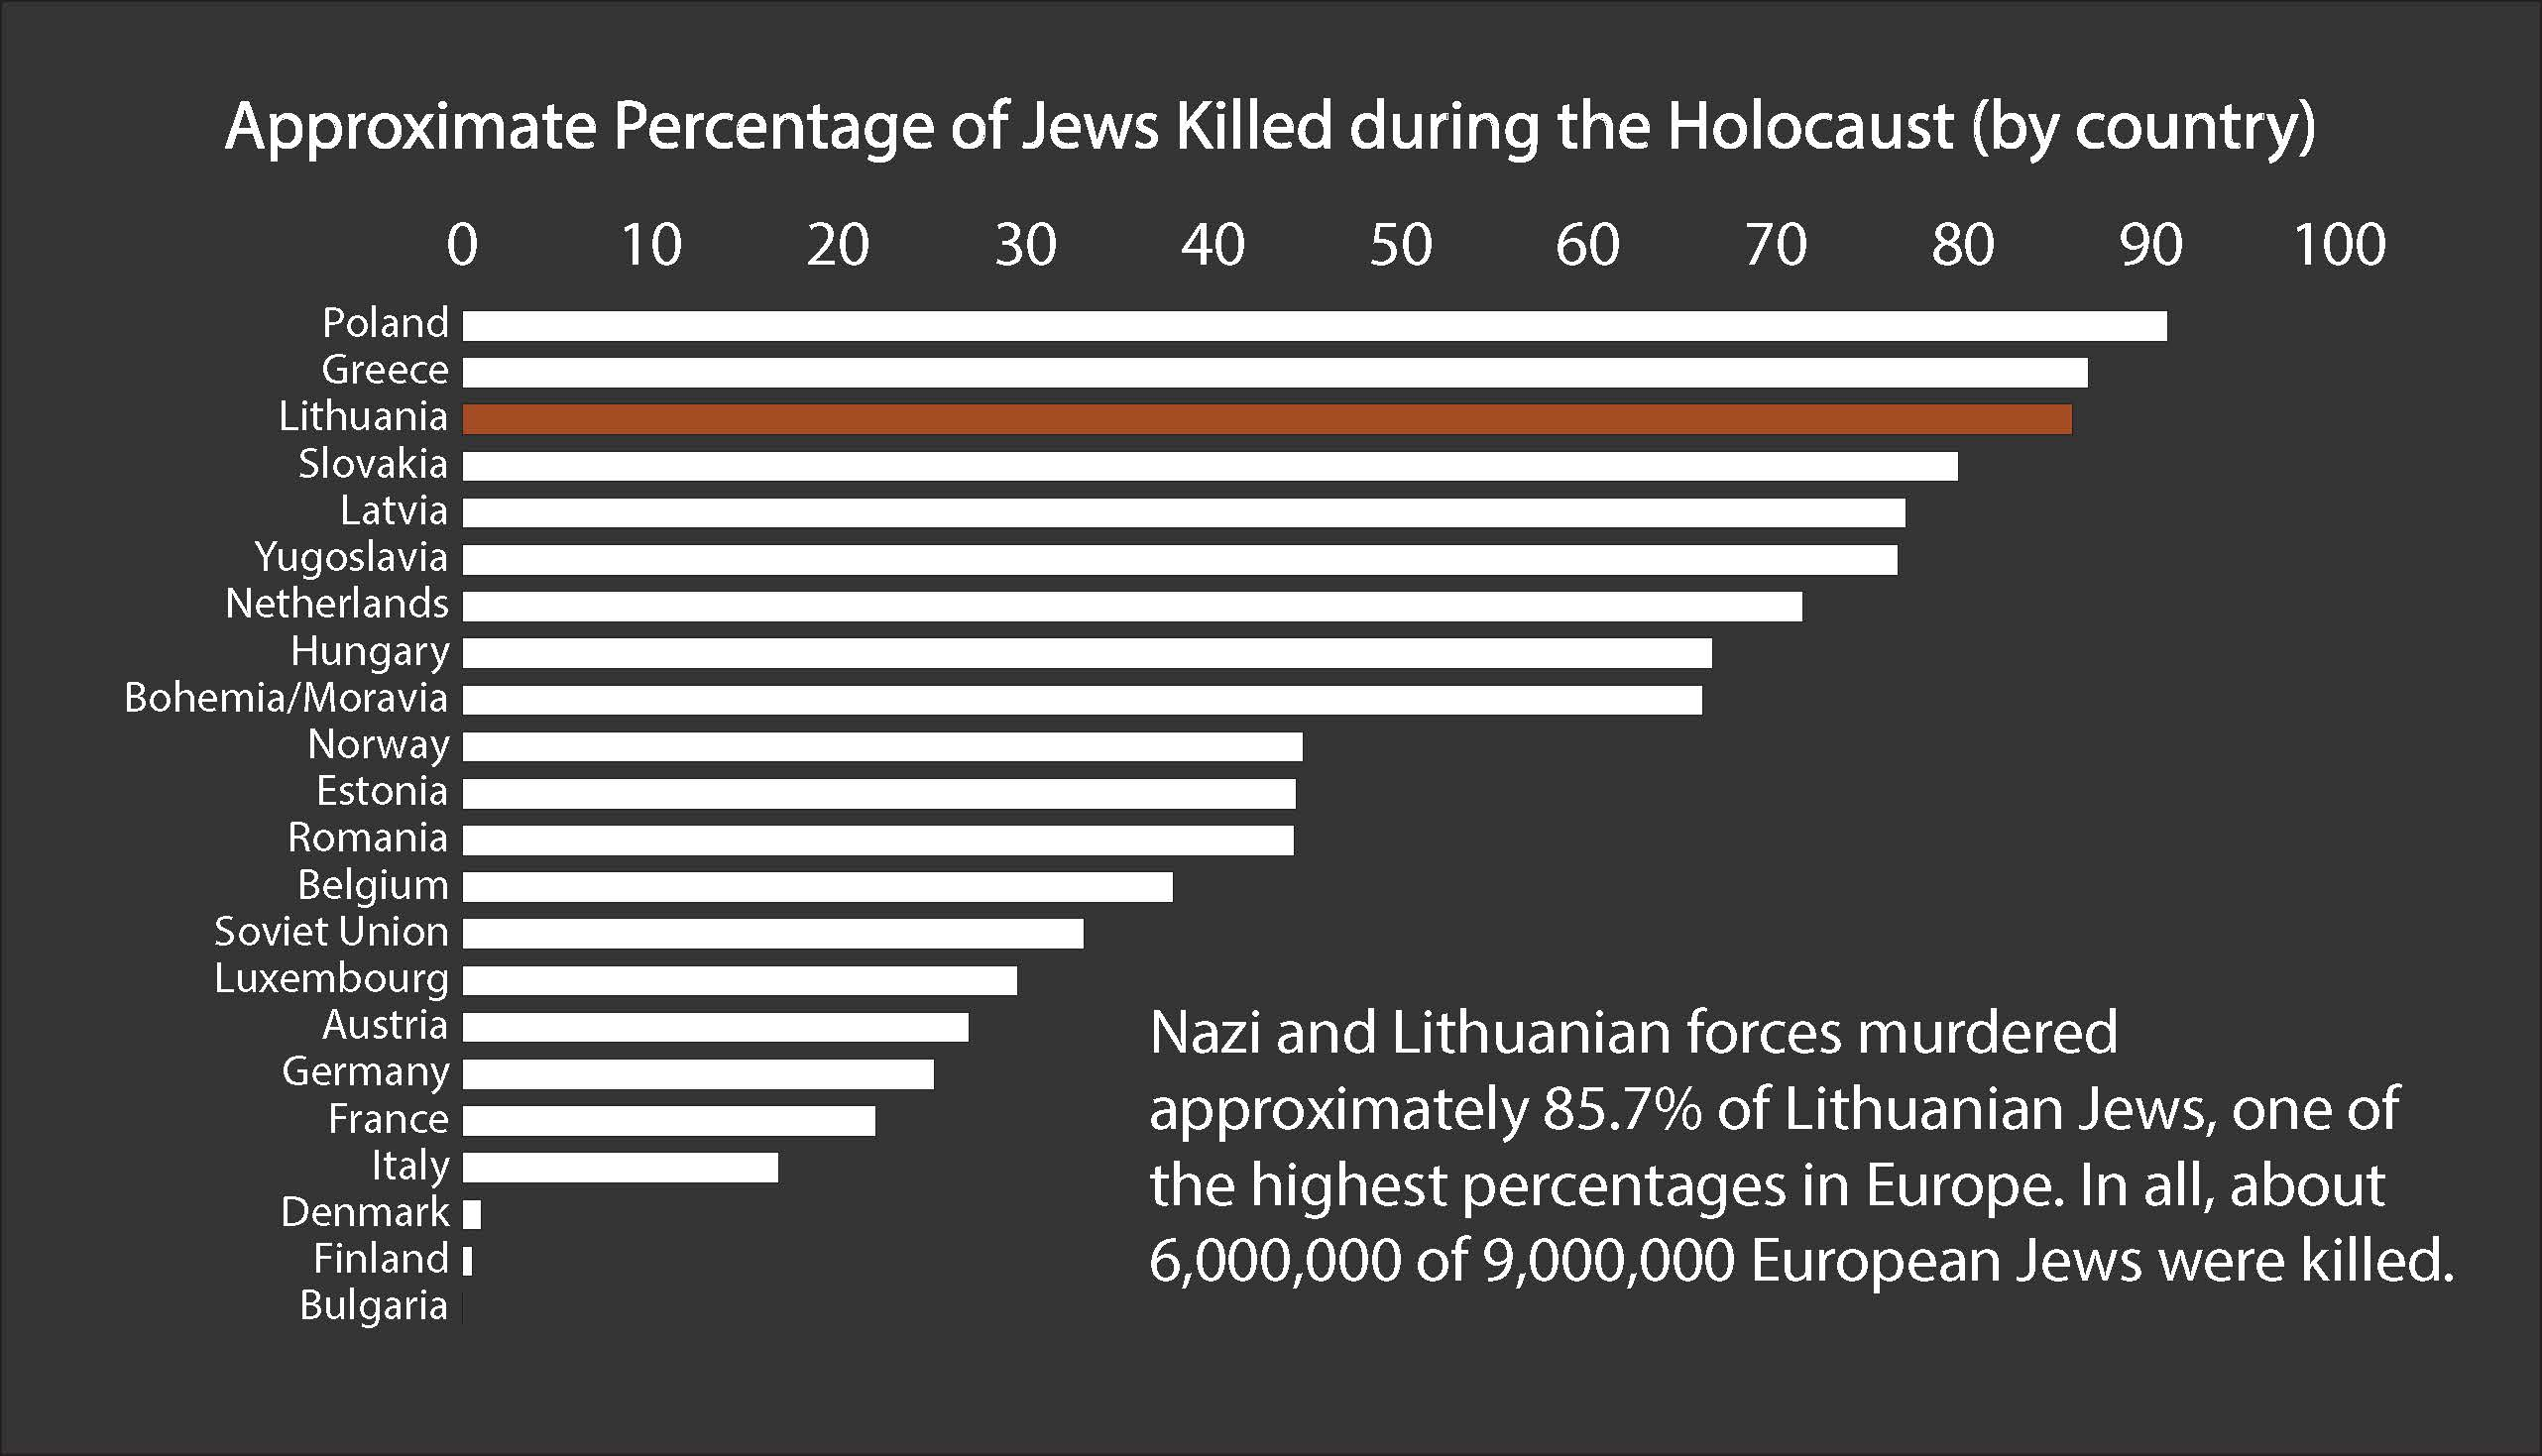 A graph demonstrating the percentage of the Jewish population killed during the Holocaust by country. Approximately 87.5 percent of Lithuanian Jews were killed, ranking it the third highest, following Poland and Greece.